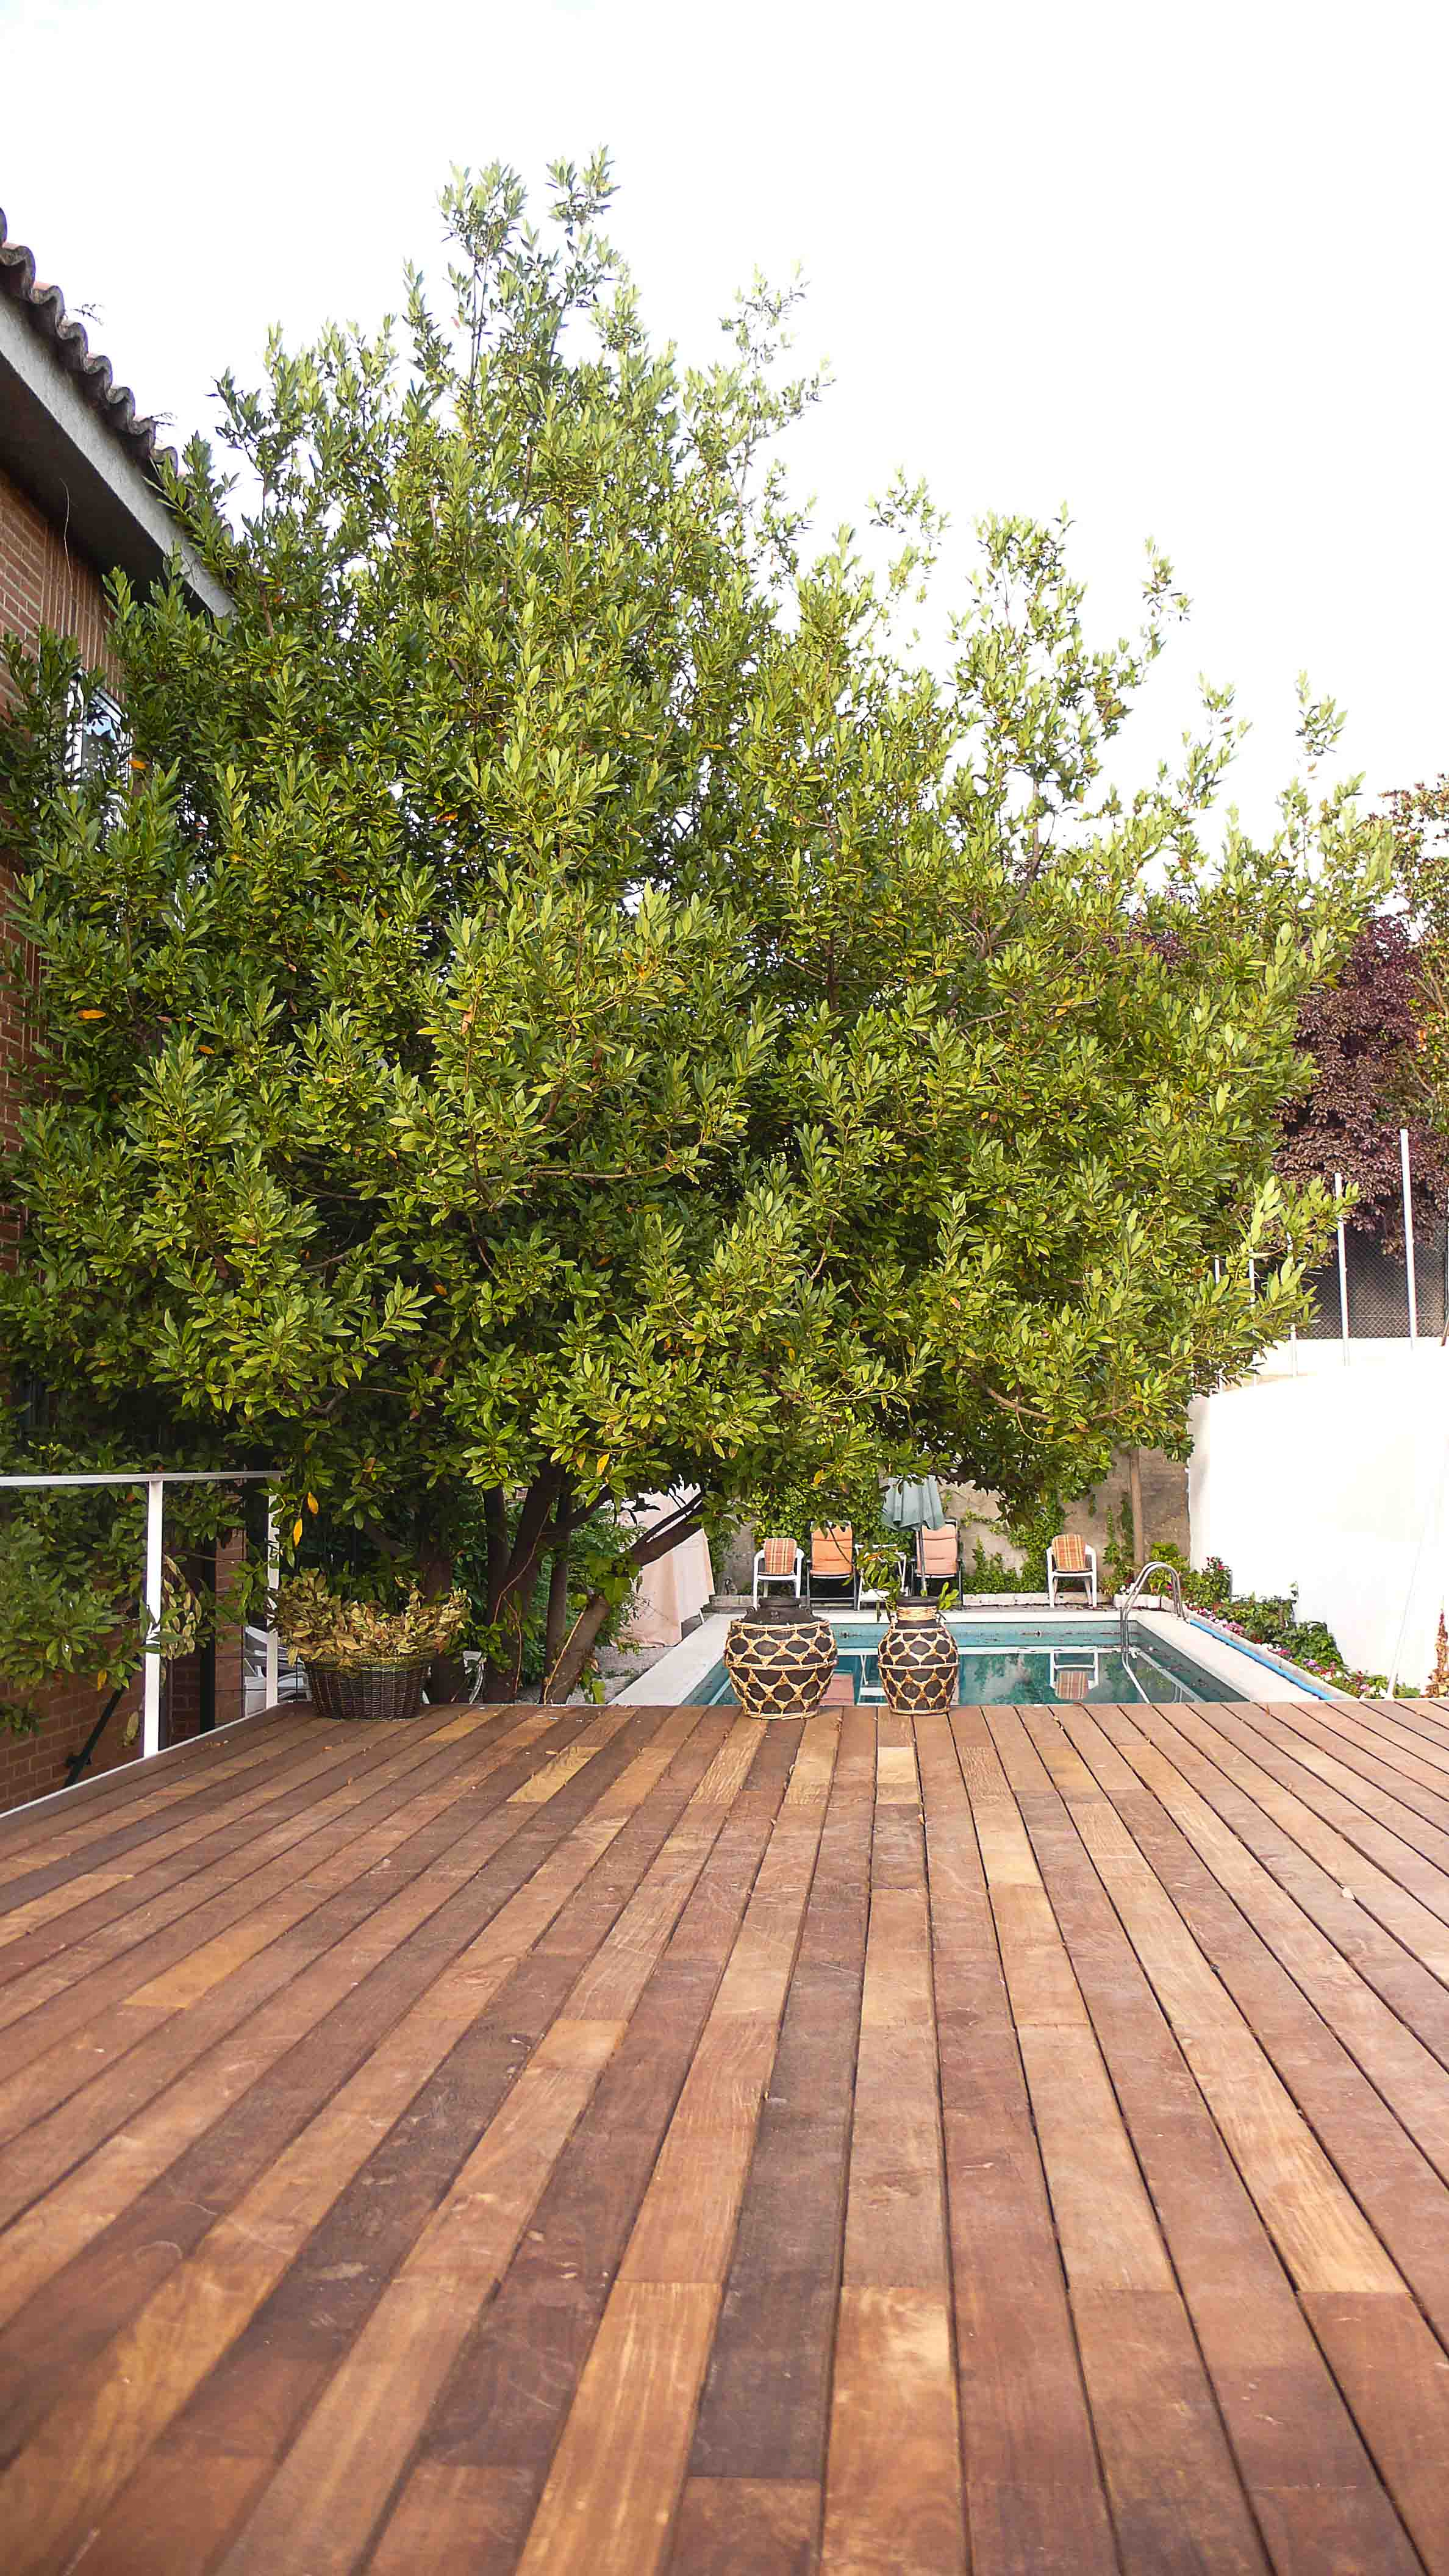 terrasse_garage_extension_maison_indiciduelle1_madrid